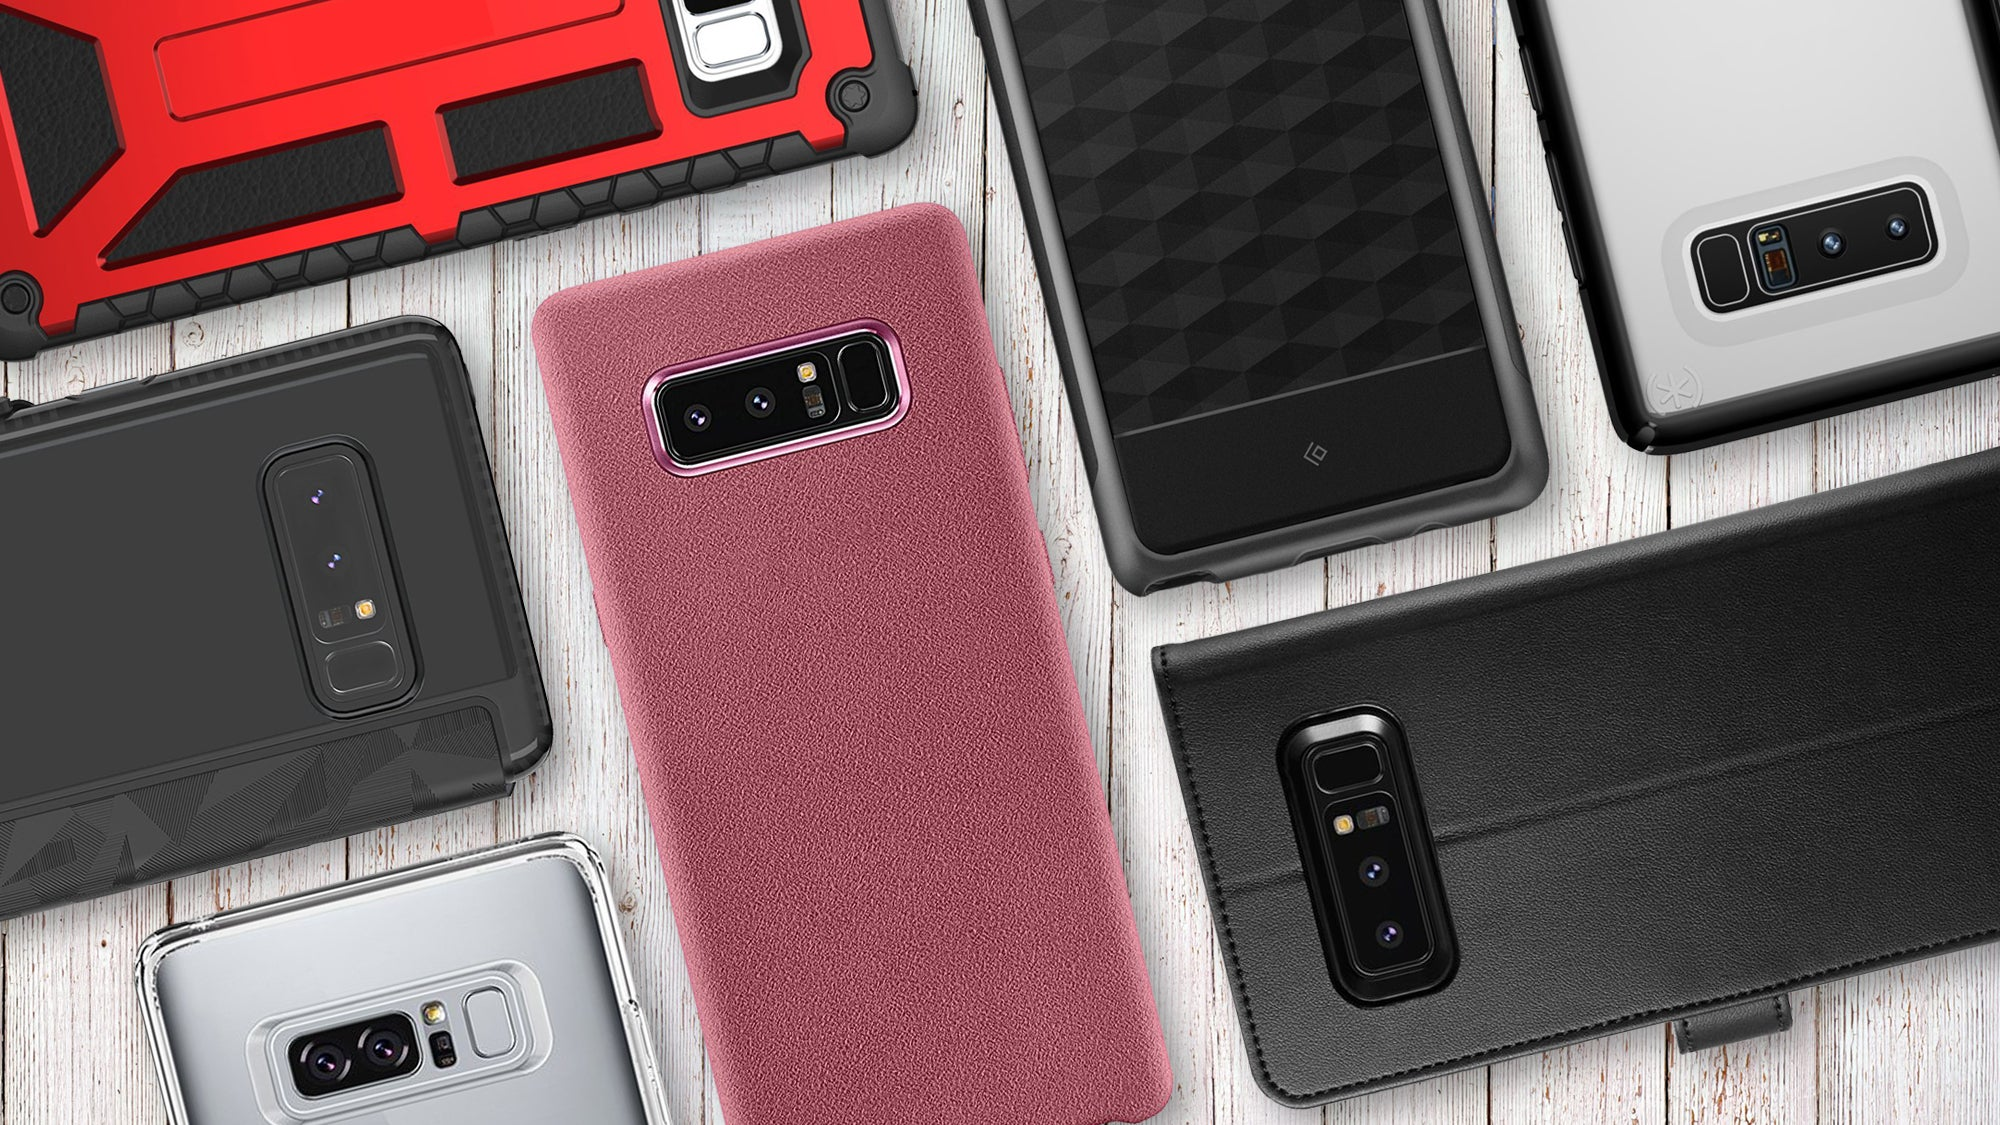 Best Samsung Galaxy Note 8 Cases Top Picks In Every Style Pcworld Spigen Neo Hybrid Crystal S8 Plus Gun Metal Case Hub